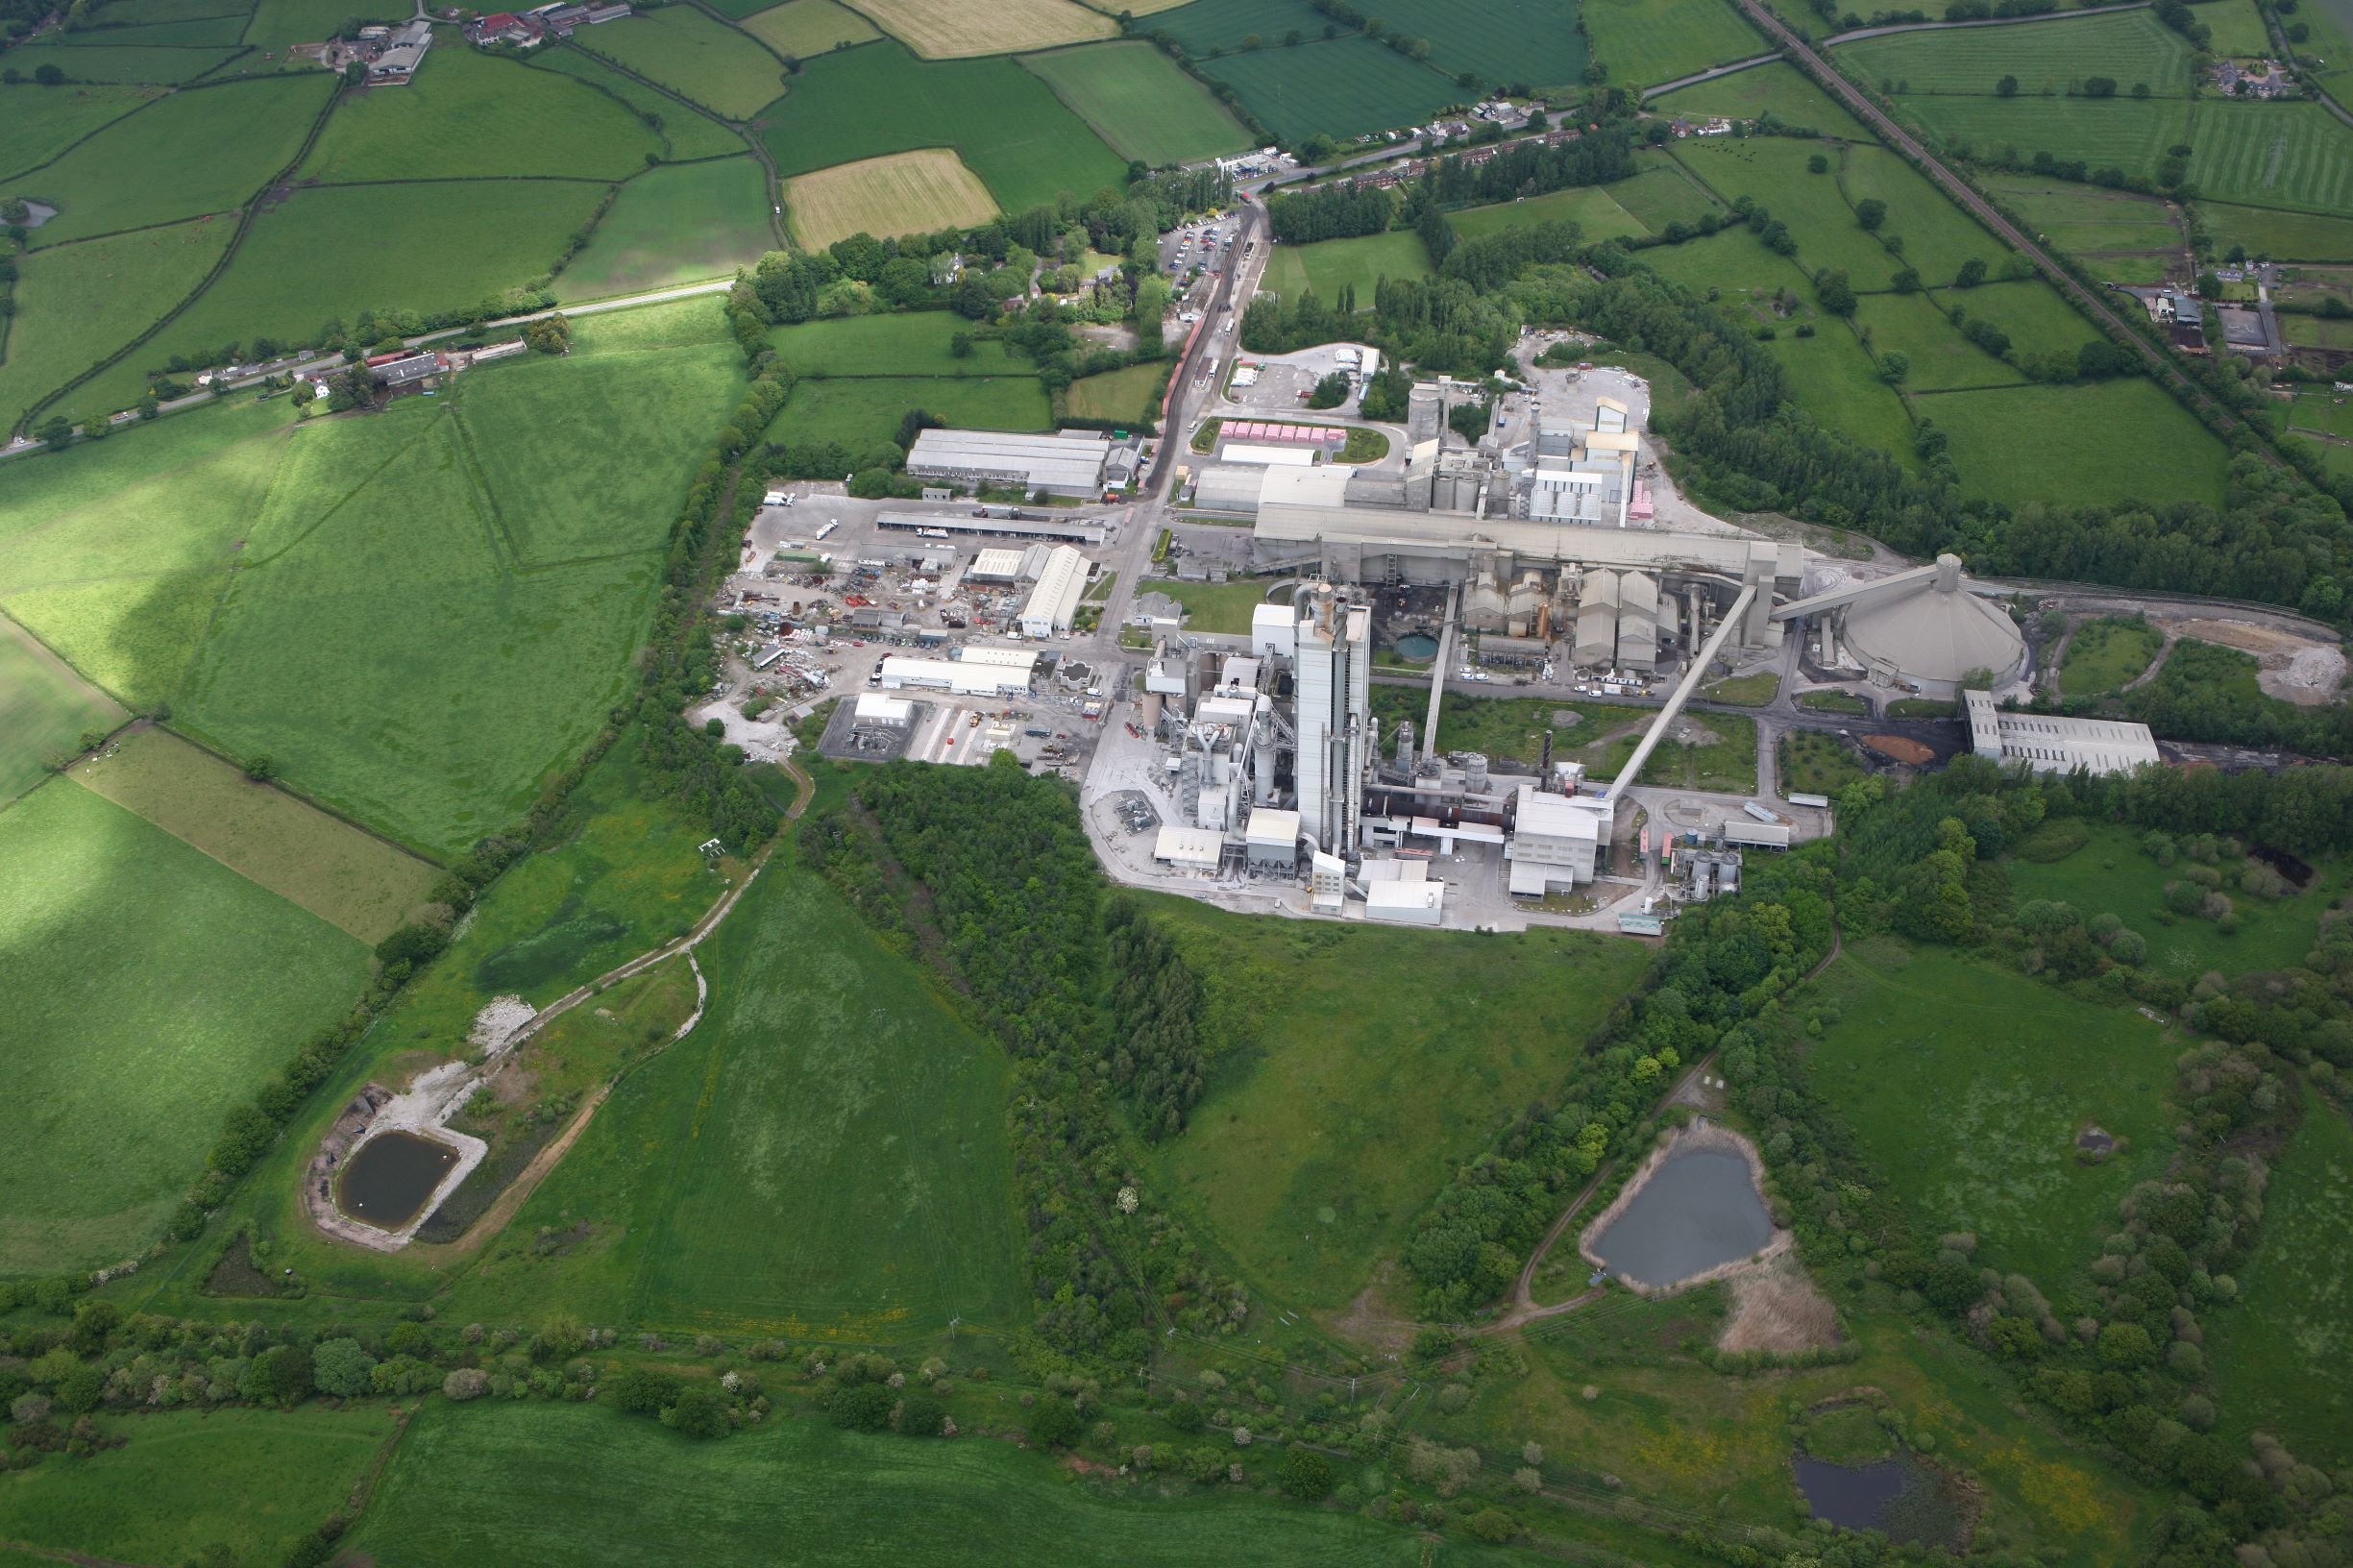 Hanson's Padeswood cement works will decarbonise as part of the HyNet North West project